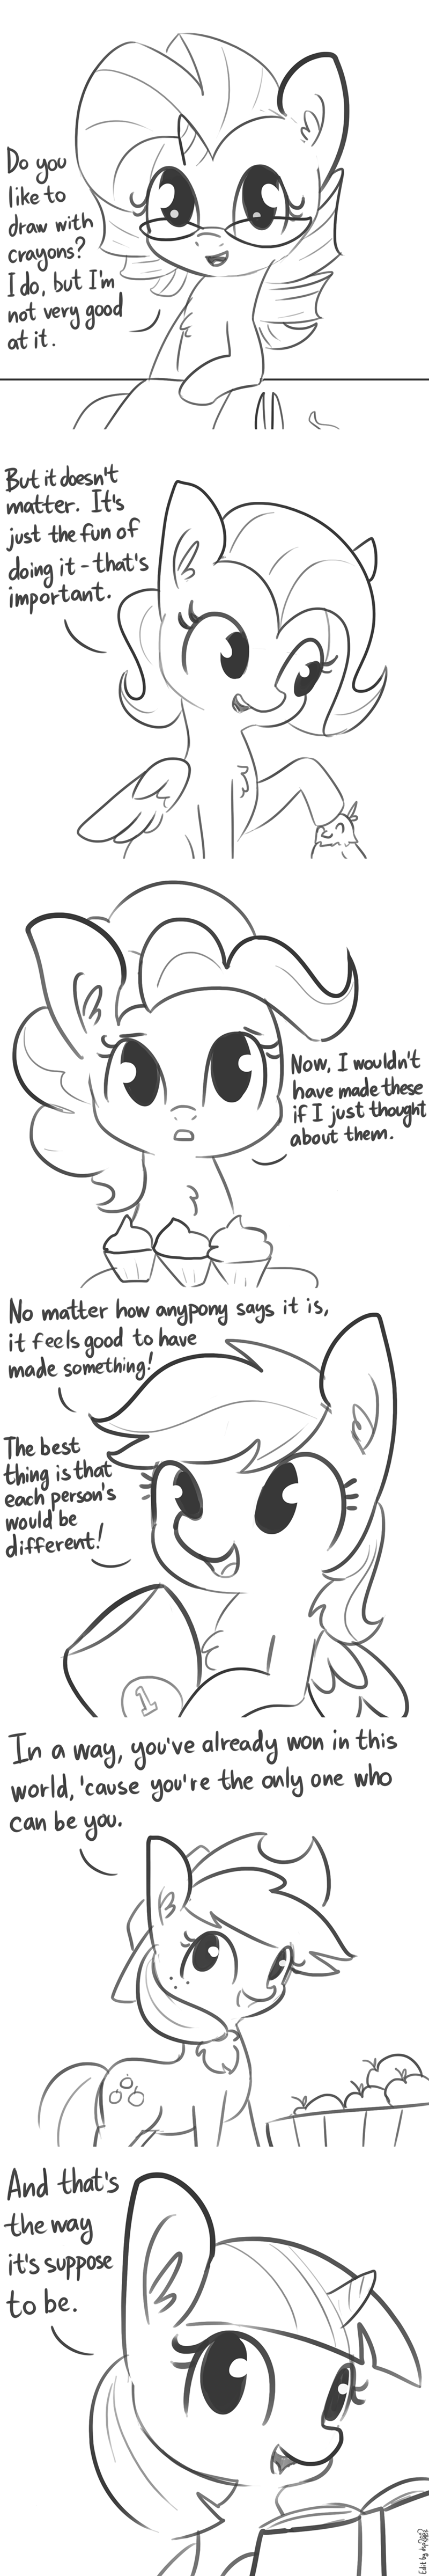 wholesome applejack mr rogers tj pones dsp2003 twilight sparkle pinkie pie rarity comic fluttershy rainbow dash - 9145620480